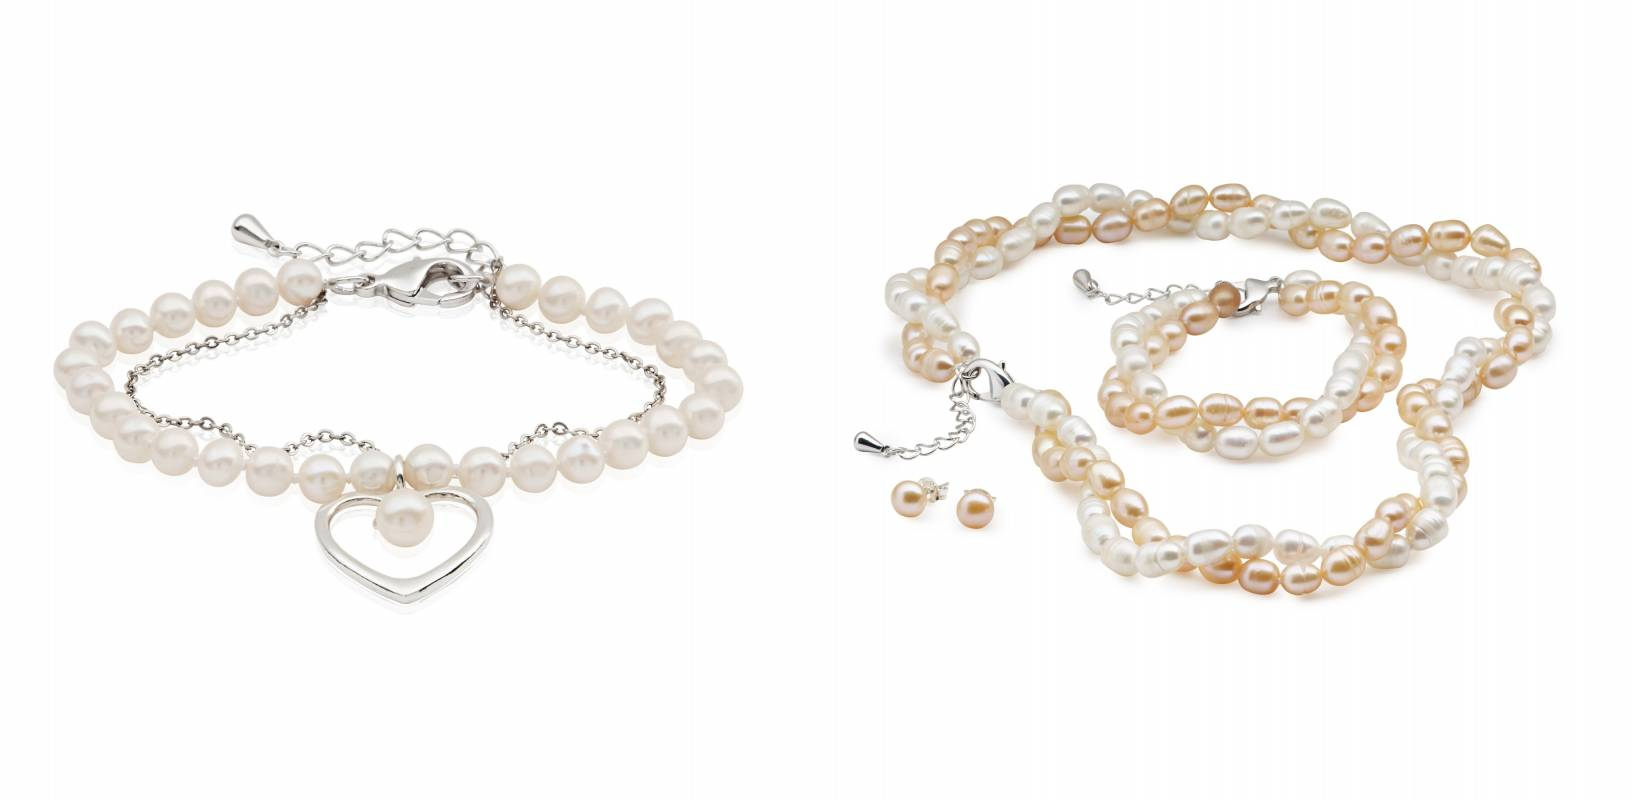 Pearl and silver bracelets and earrings jewellery products